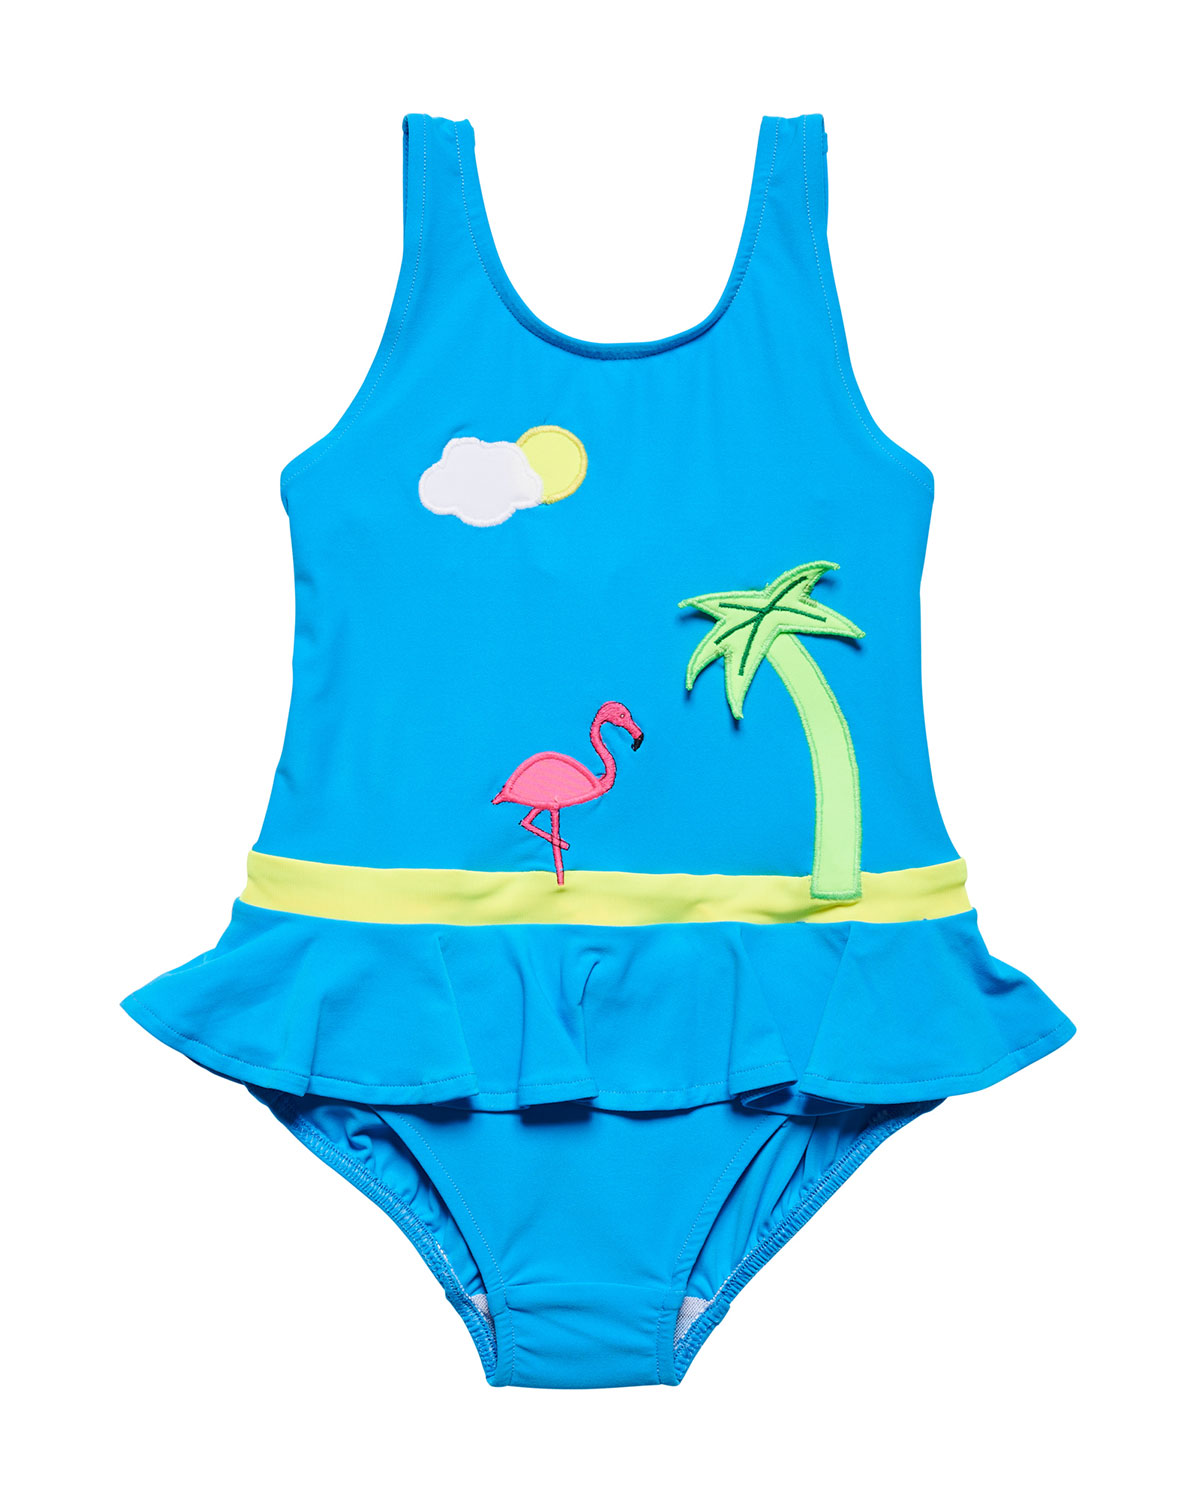 FLORENCE EISEMAN Tropical Scene One-Piece Swimsuit, Size 2-6X in Blue